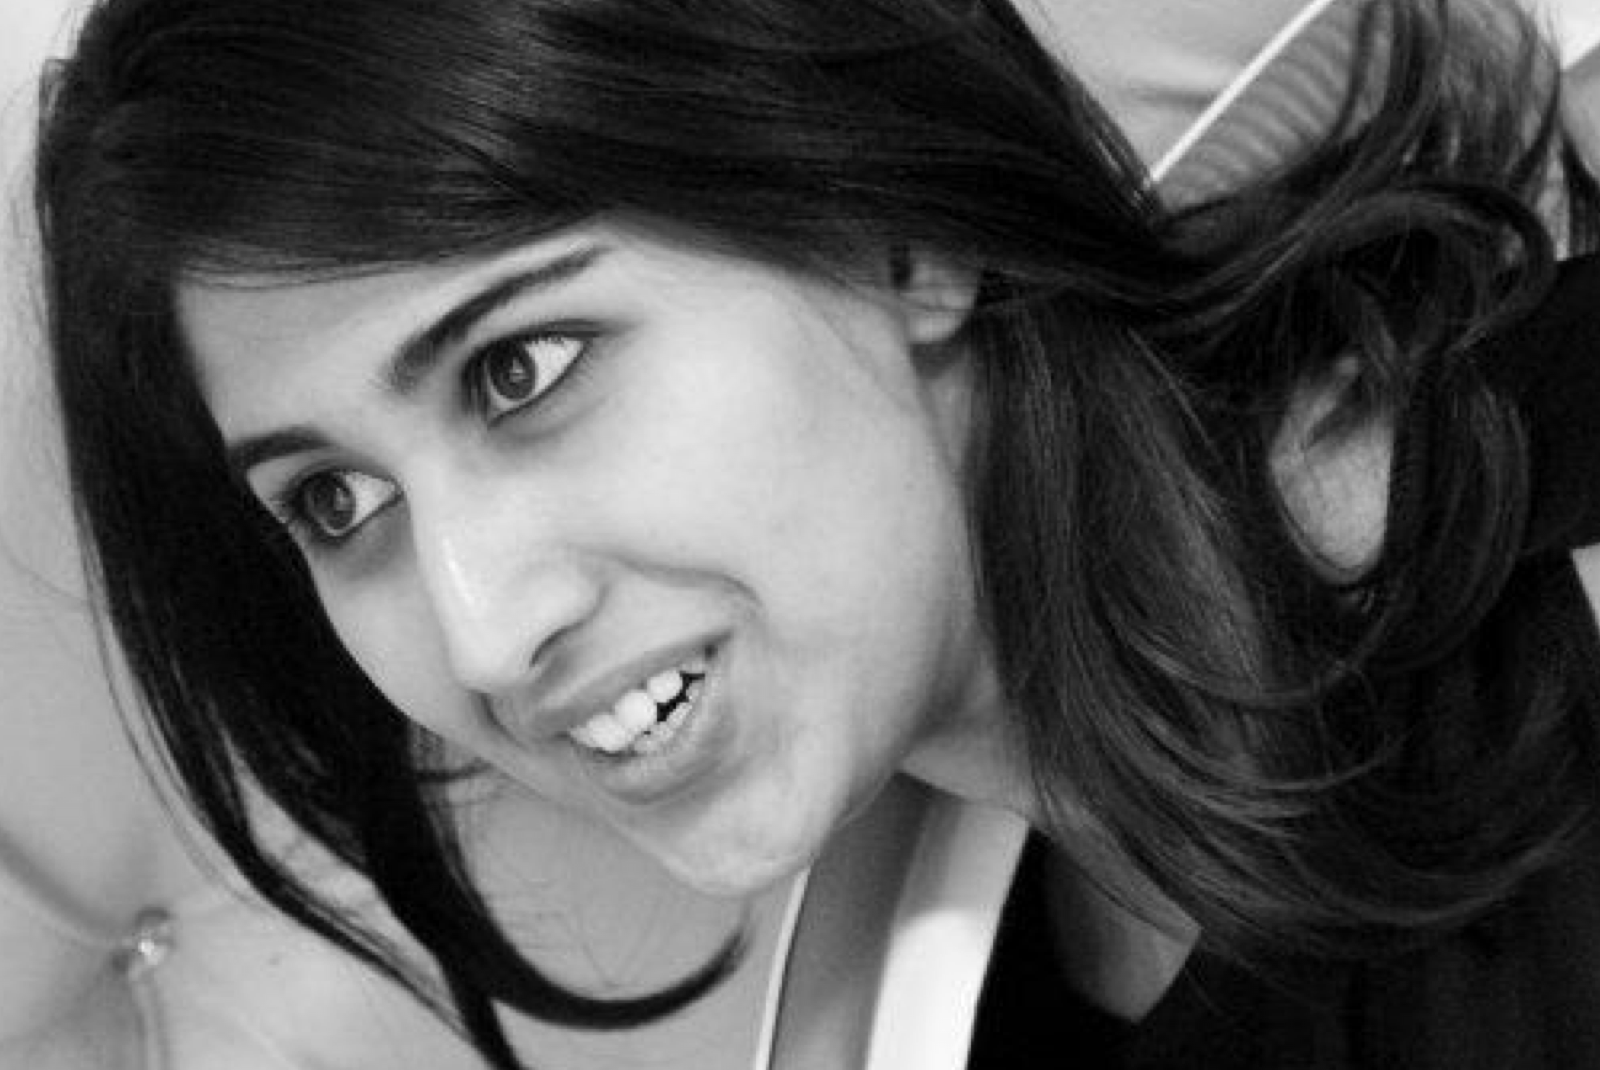 49: Understanding materials while designing products with Fenny Ganatra.